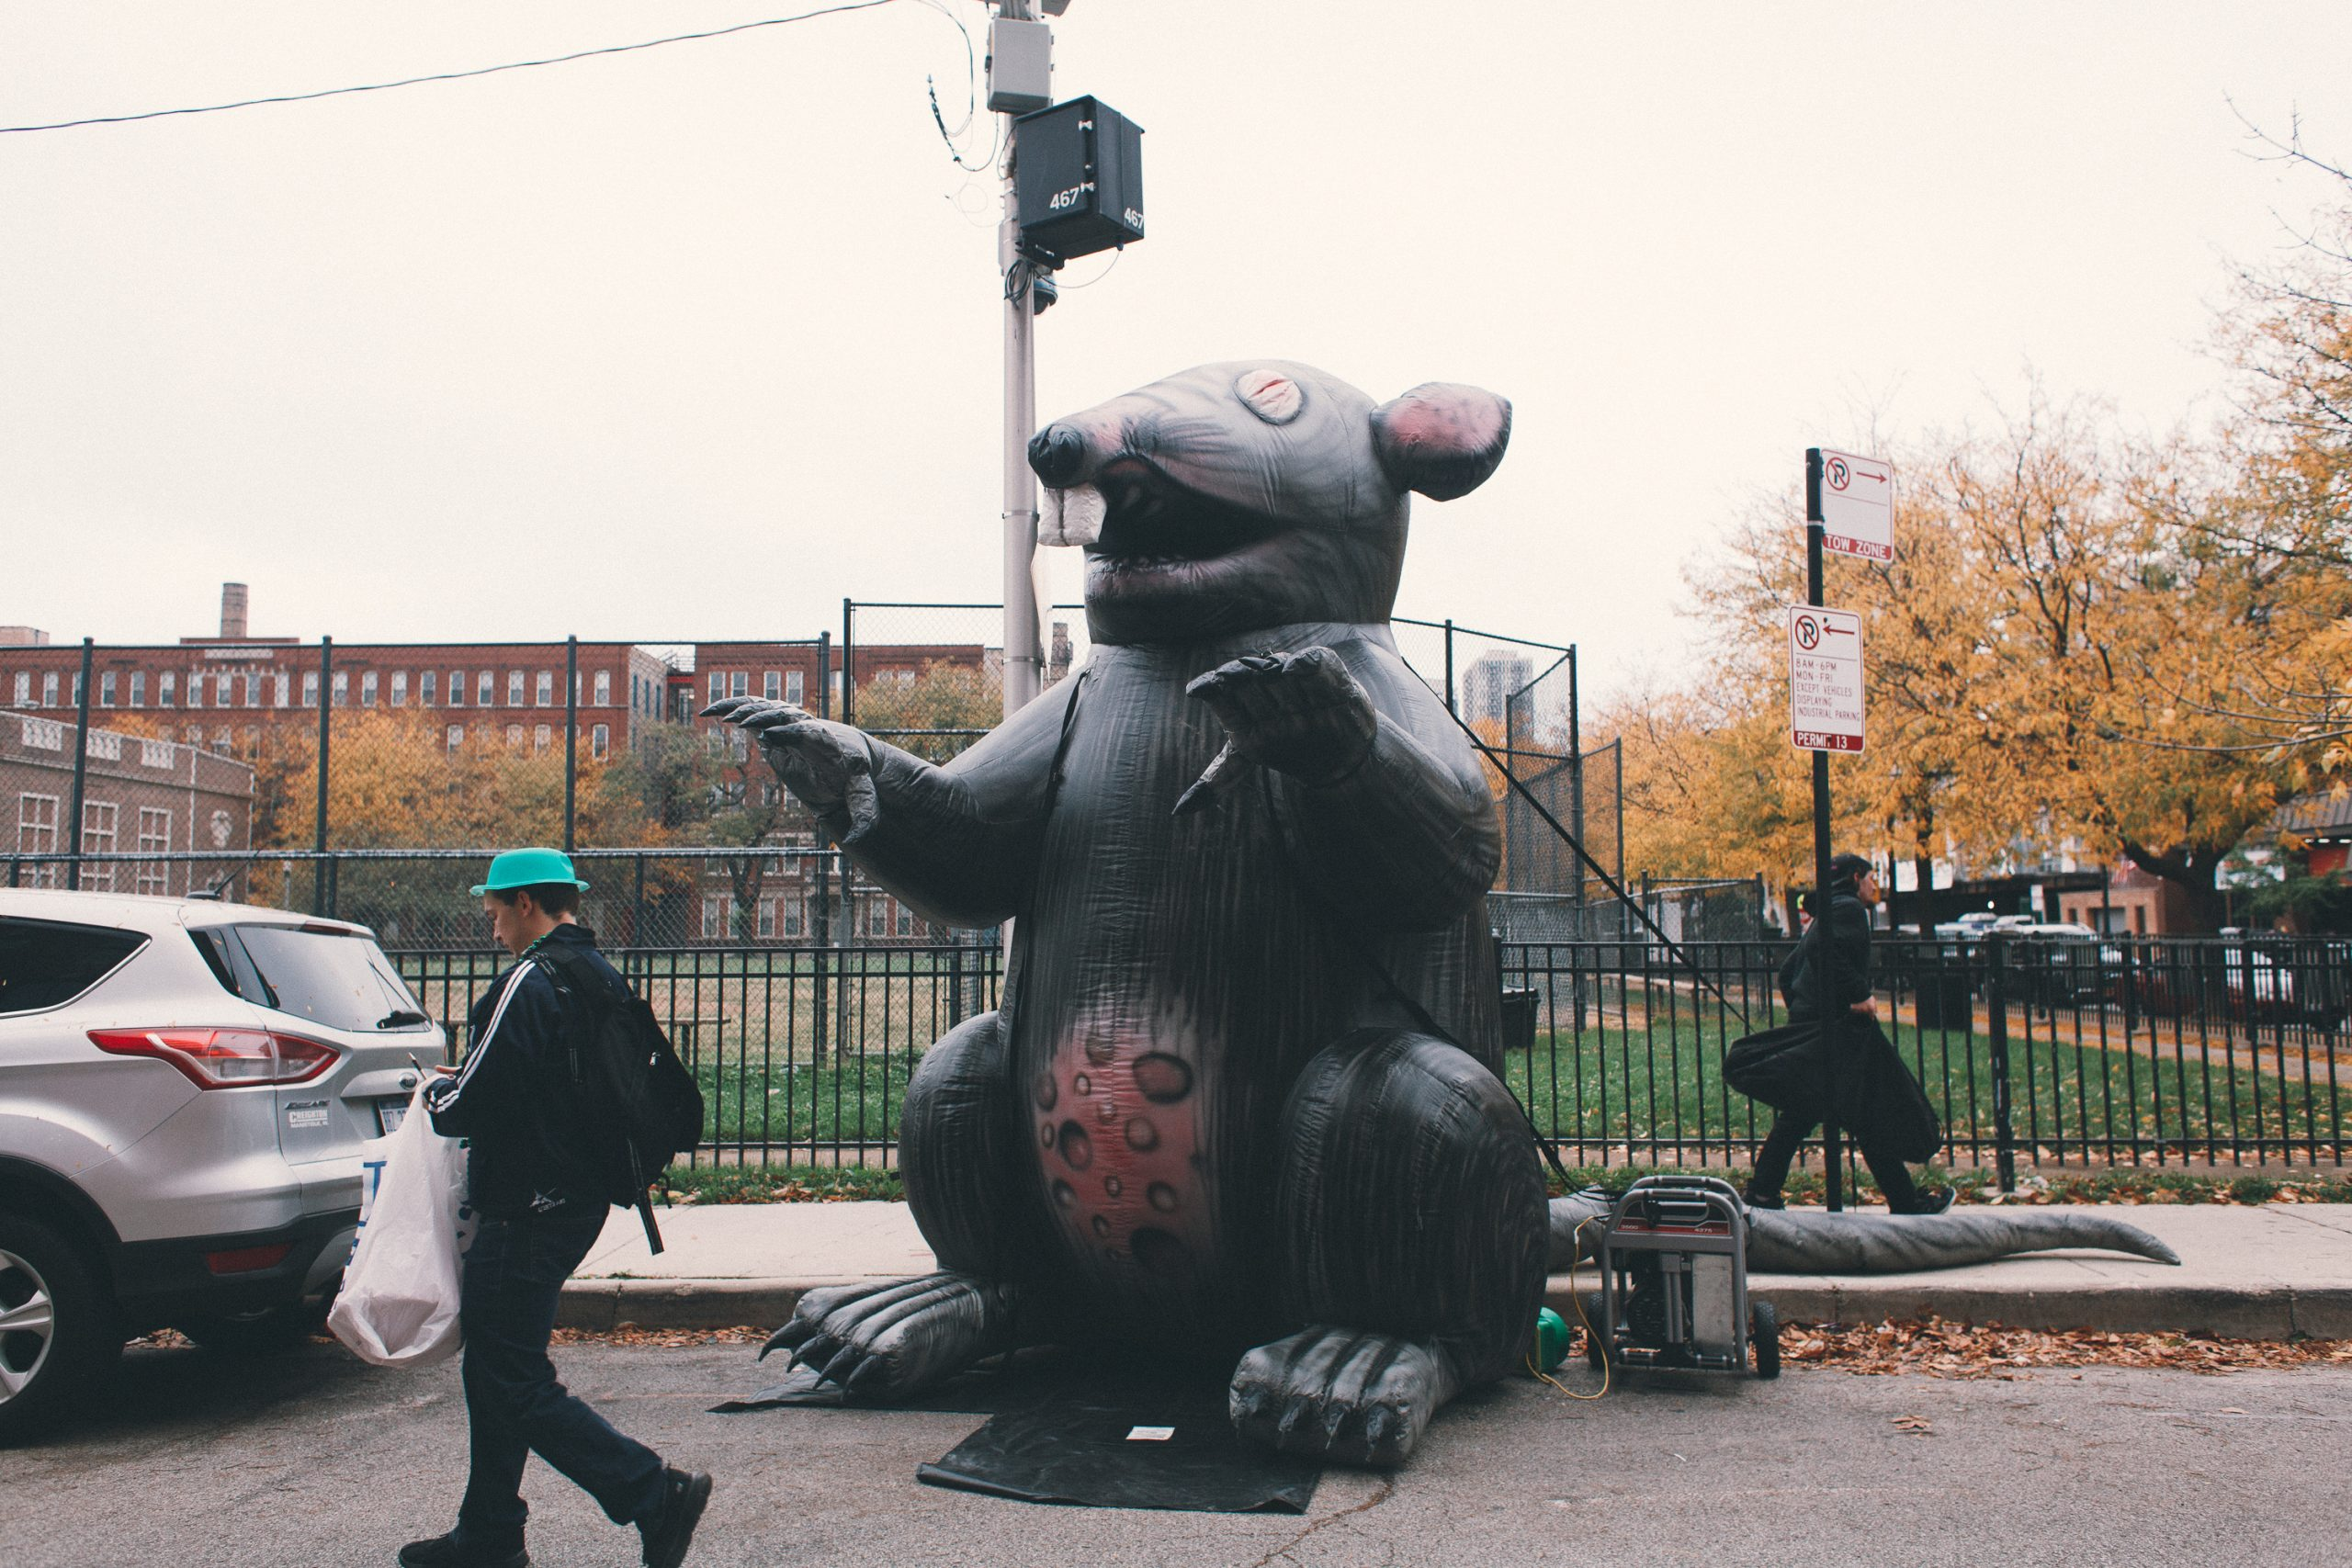 Stinky the Riv Rat keeps an eye on the protest.